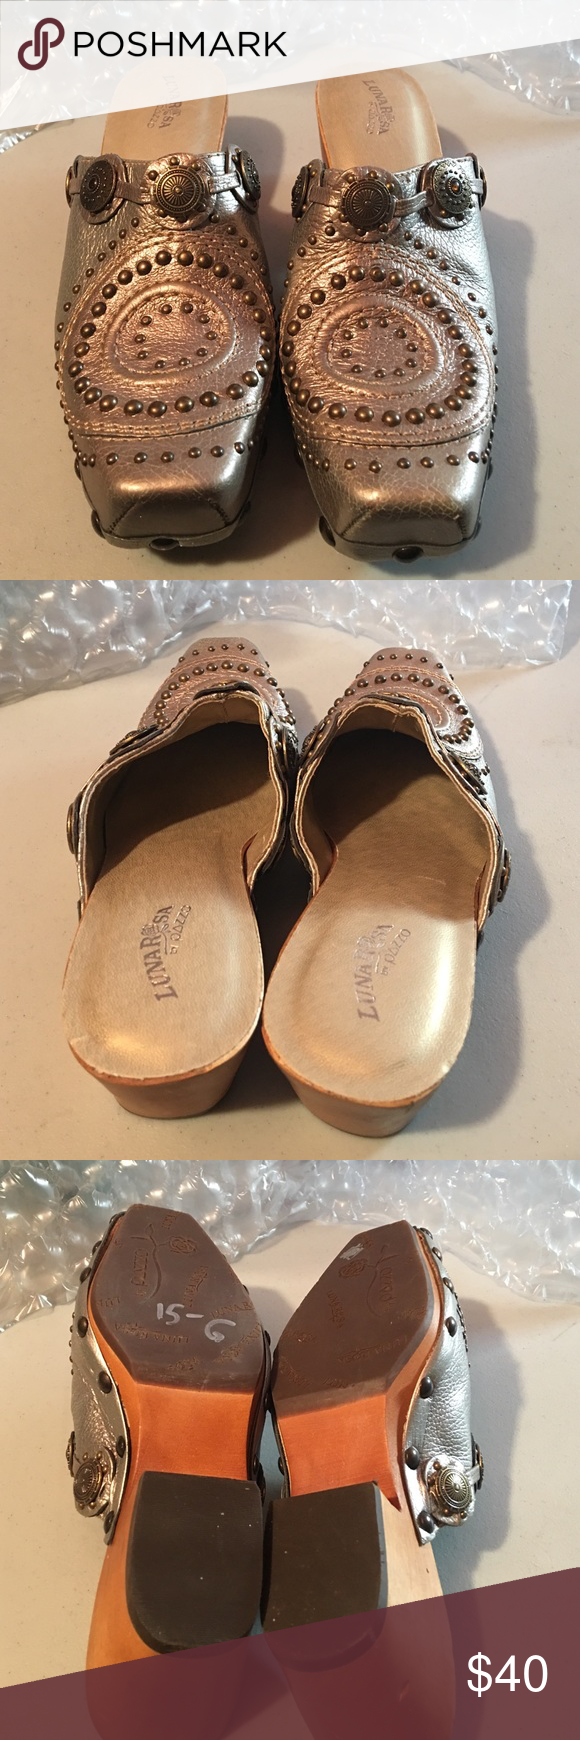 luna rose by pazzo clogs size 6 luna rosa by pazzo clogs size 6 small nick im bag clog as shown Shoes Mules & Clogs